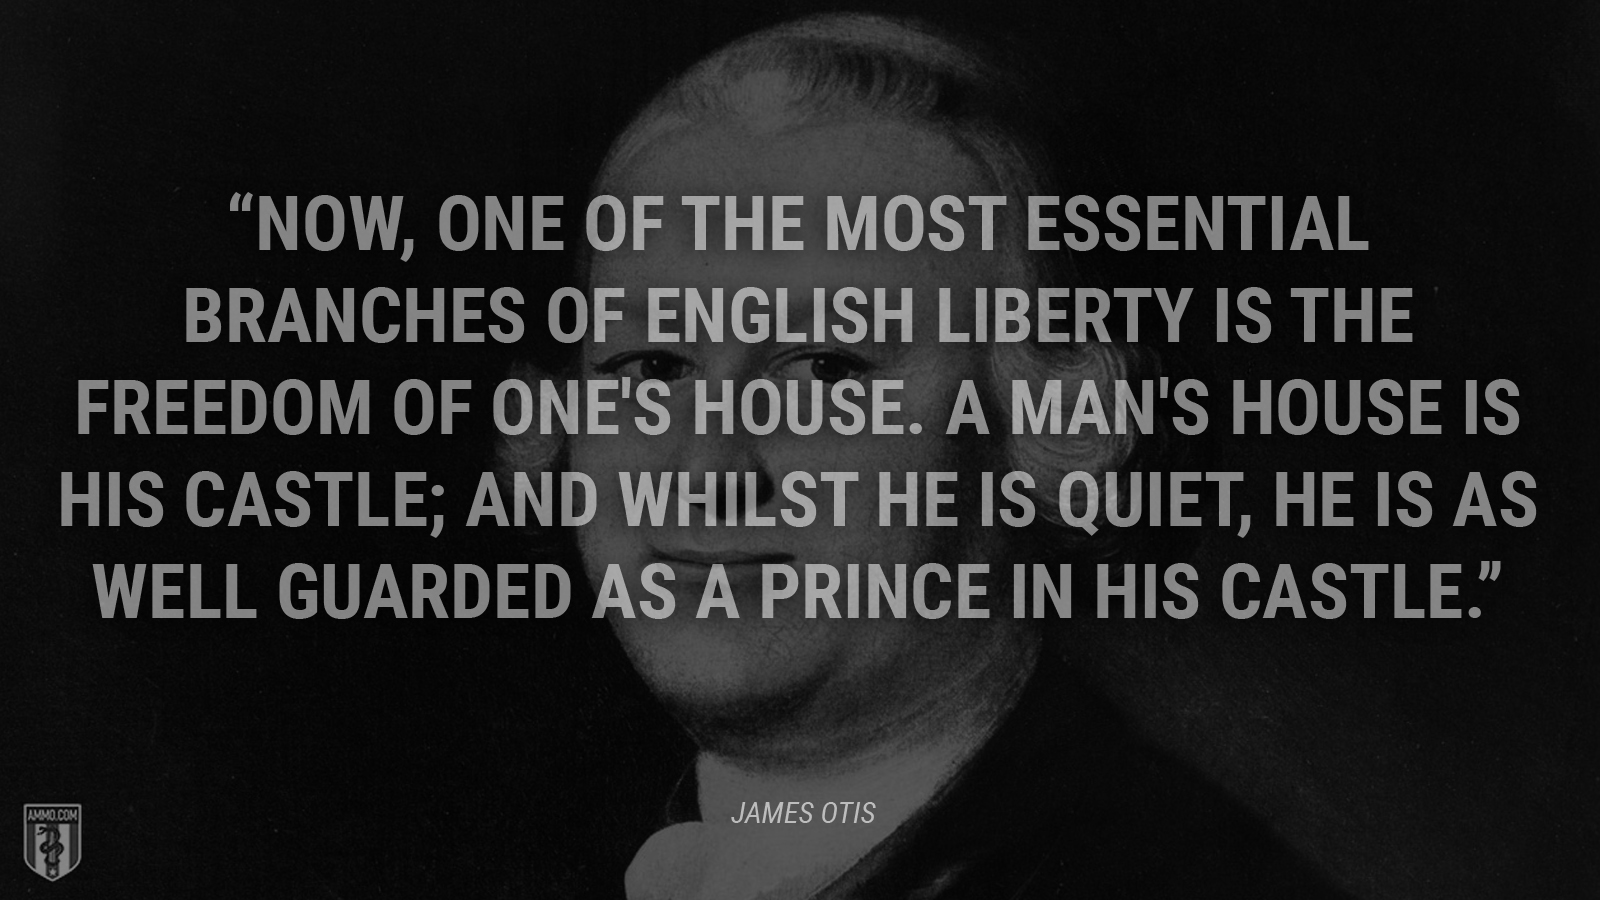 """Now, one of the most essential branches of English liberty is the freedom of one's house. A man's house is his castle; and whilst he is quiet, he is as well guarded as a prince in his castle."" - James Otis"